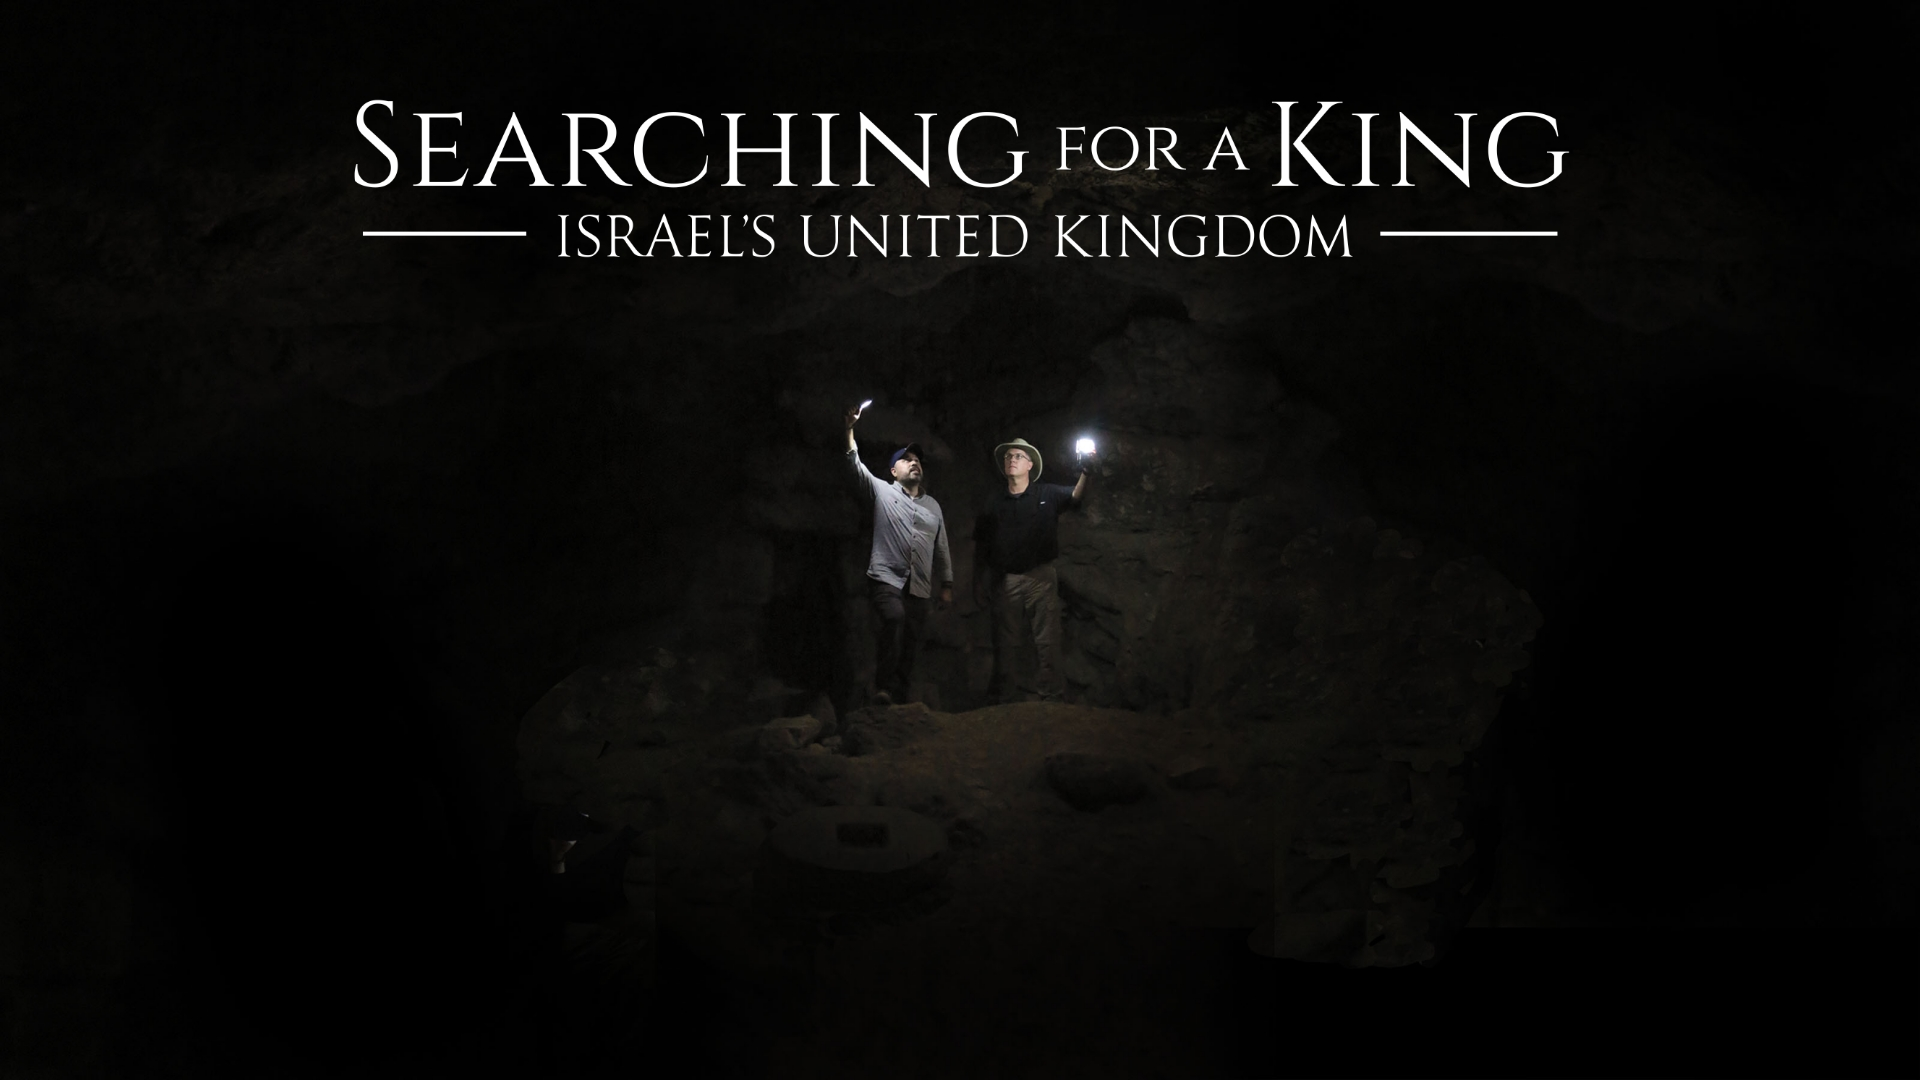 Searching for a King